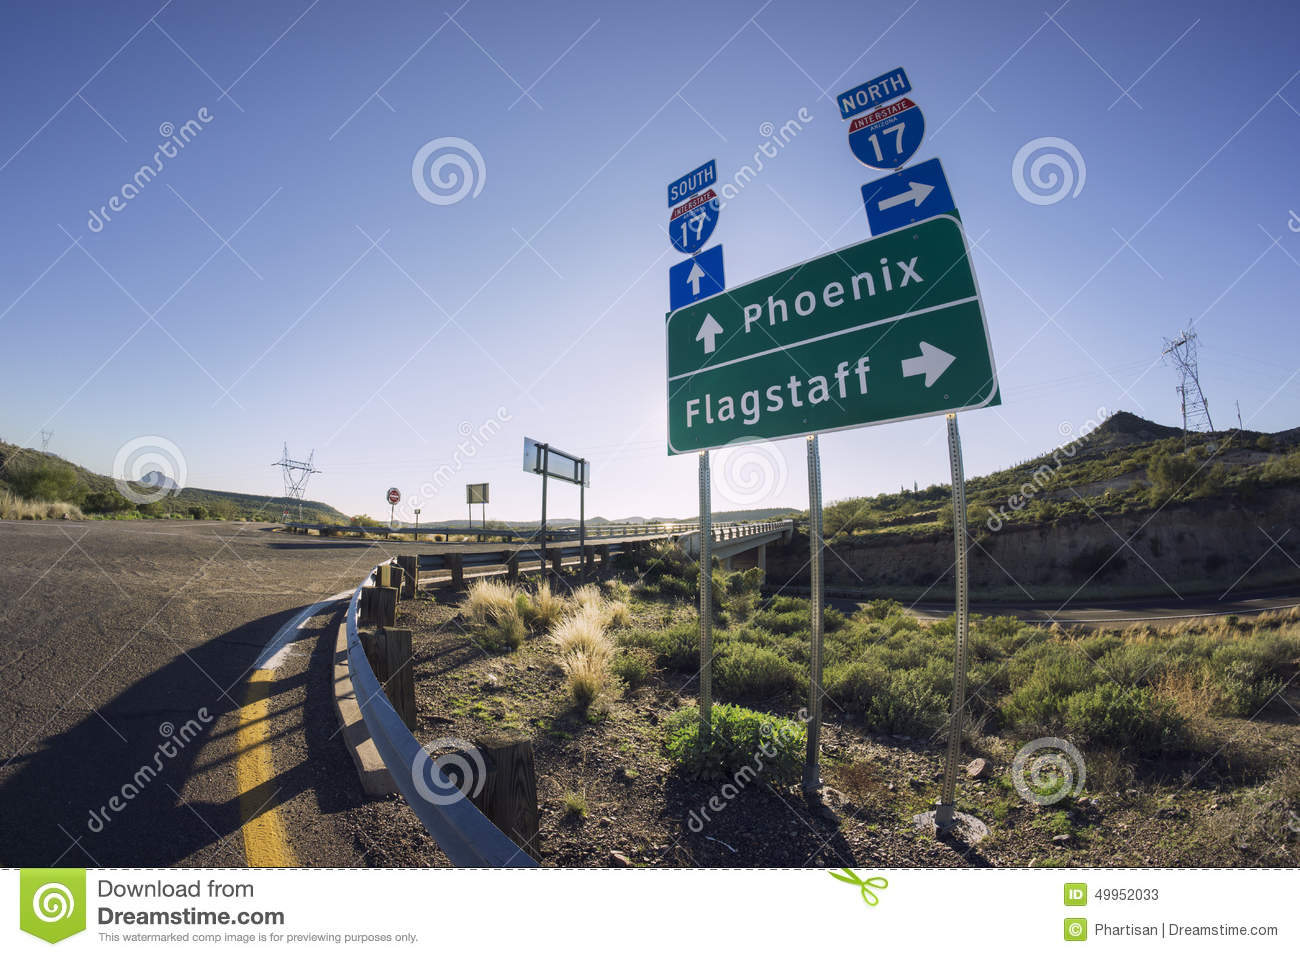 I17 road sign for phoenix and flagstaff arizona stock for Fishing in flagstaff